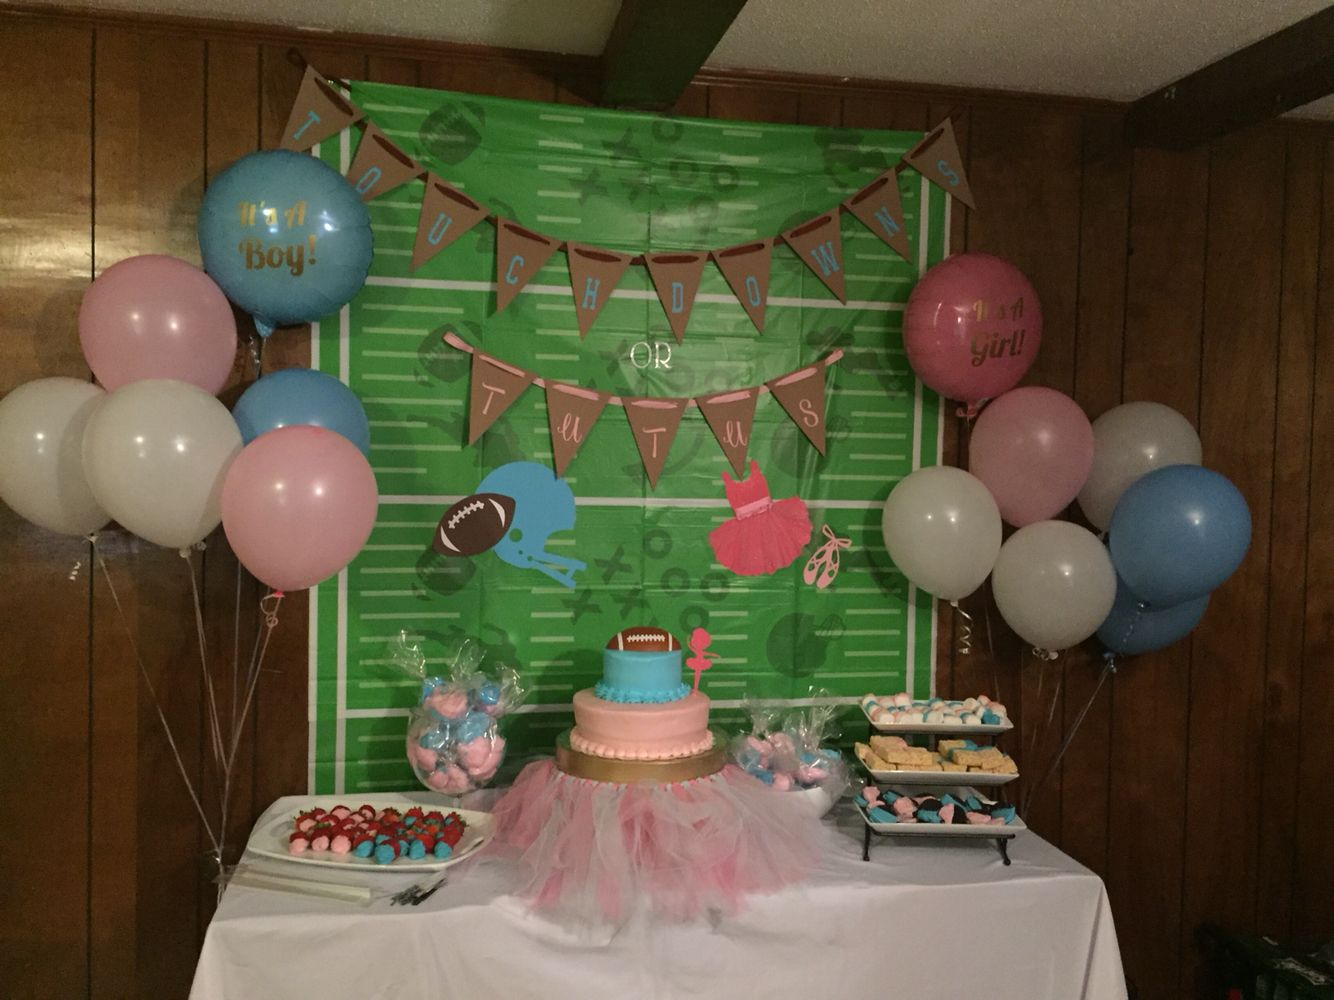 Touchdowns Or Tutus Sweets Table Football Gender Reveal Party Tutus Gender Reveal Gender Reveal Party Invitations